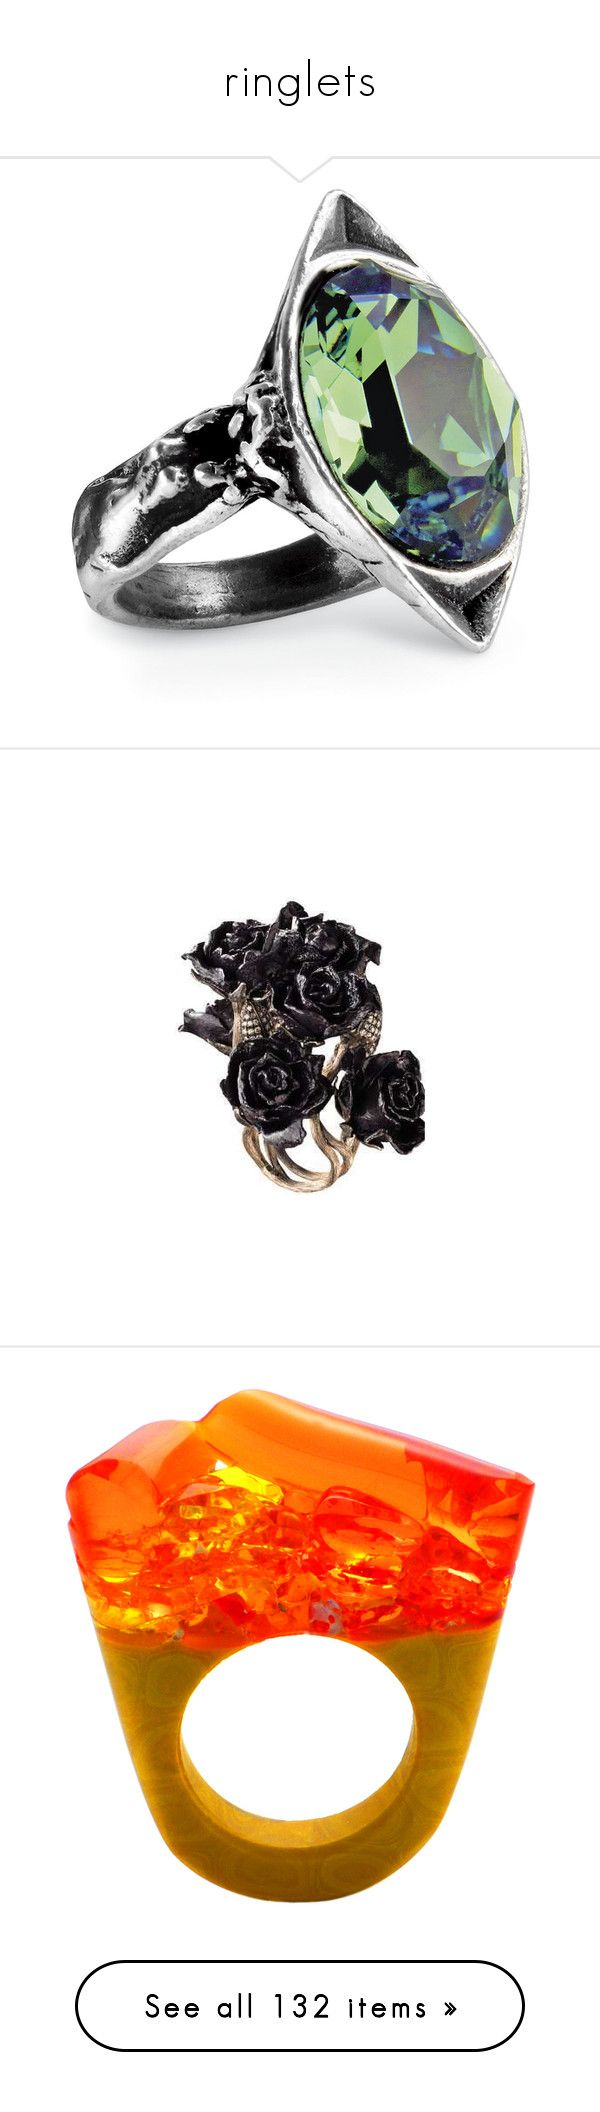 """ringlets"" by applecocaine ❤ liked on Polyvore featuring jewelry, rings, pyramid jewelry, accessories, anillos, jewels, orange, murano glass jewelry, orange ring and murano glass rings"